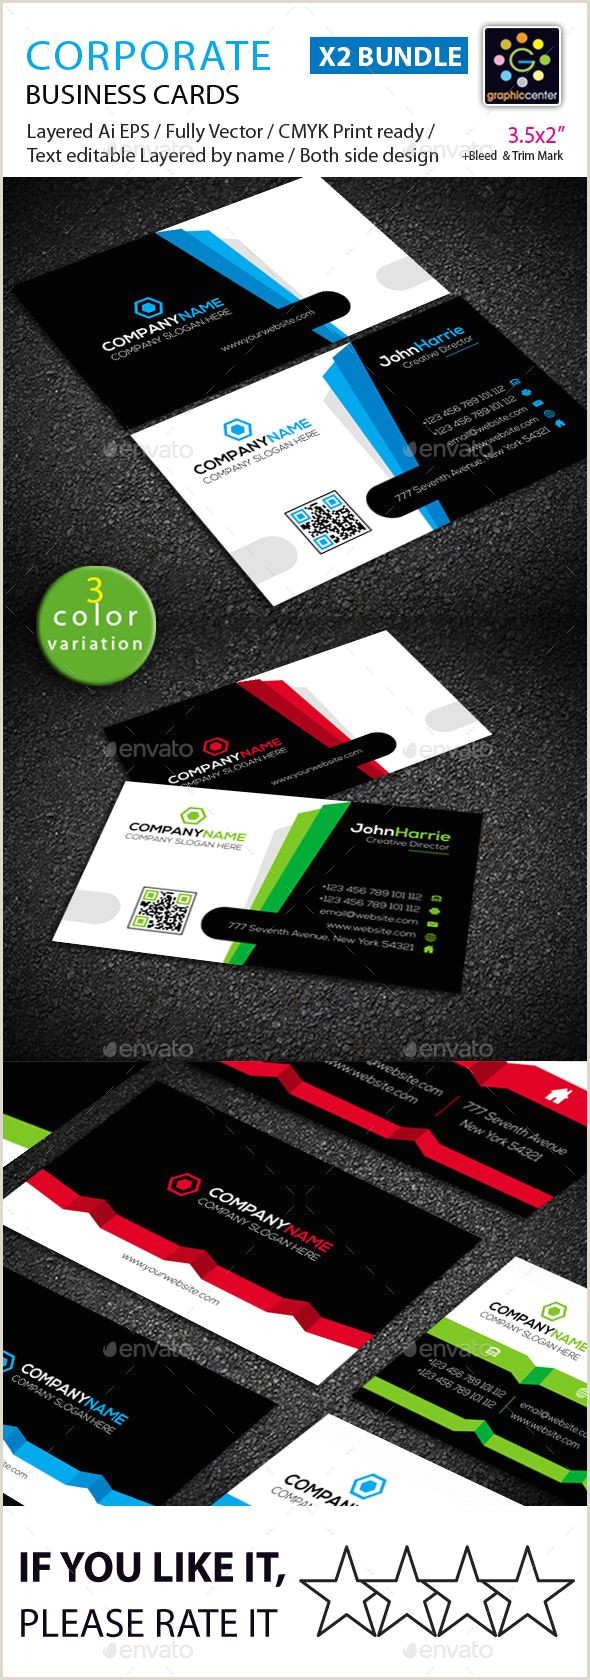 Printing Company Business Card Business Card Bundle Corporate Business Cards Download